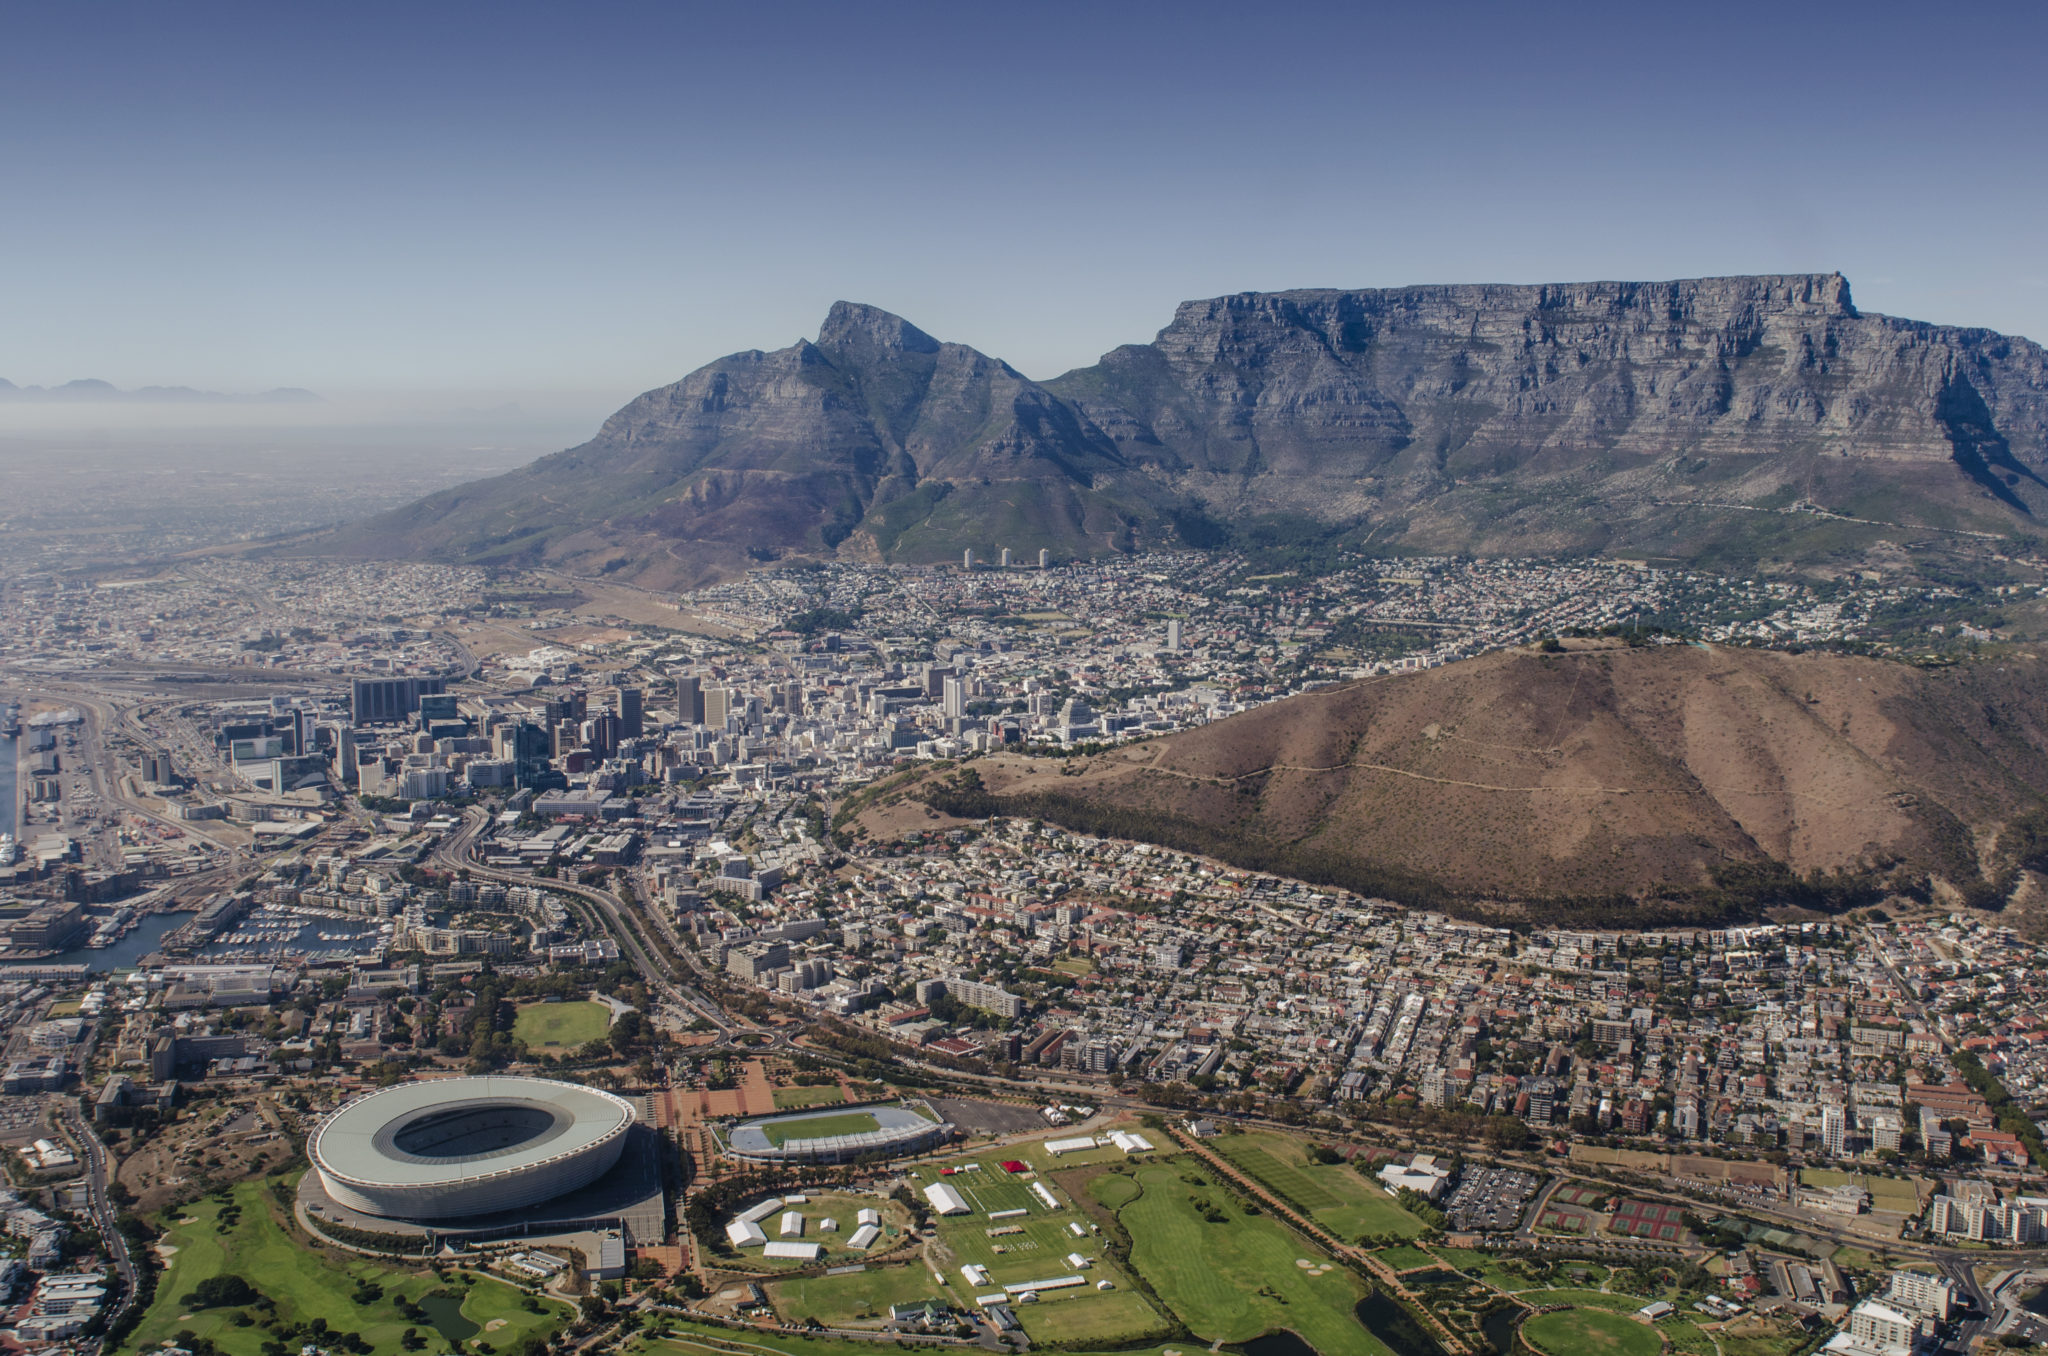 Things-to-do-in-South-Africa-Cape-Town-helicopter